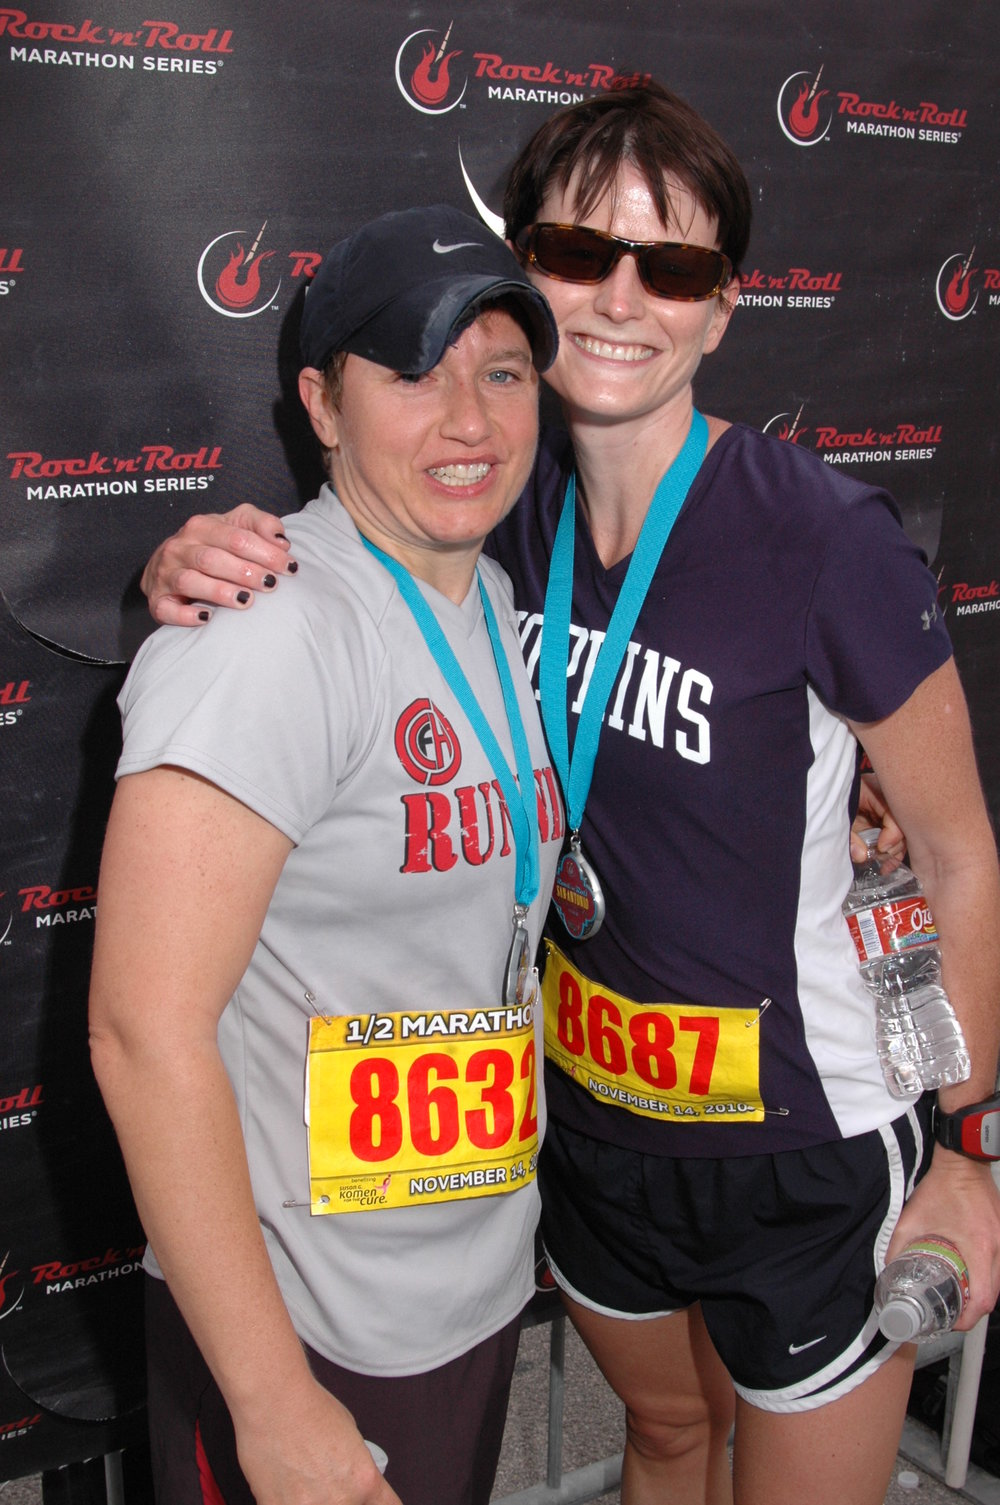 One of my closest friends and I looking like a complete disaster after I paced her to a personal best in the 2010 San Antonio Half Marathon.